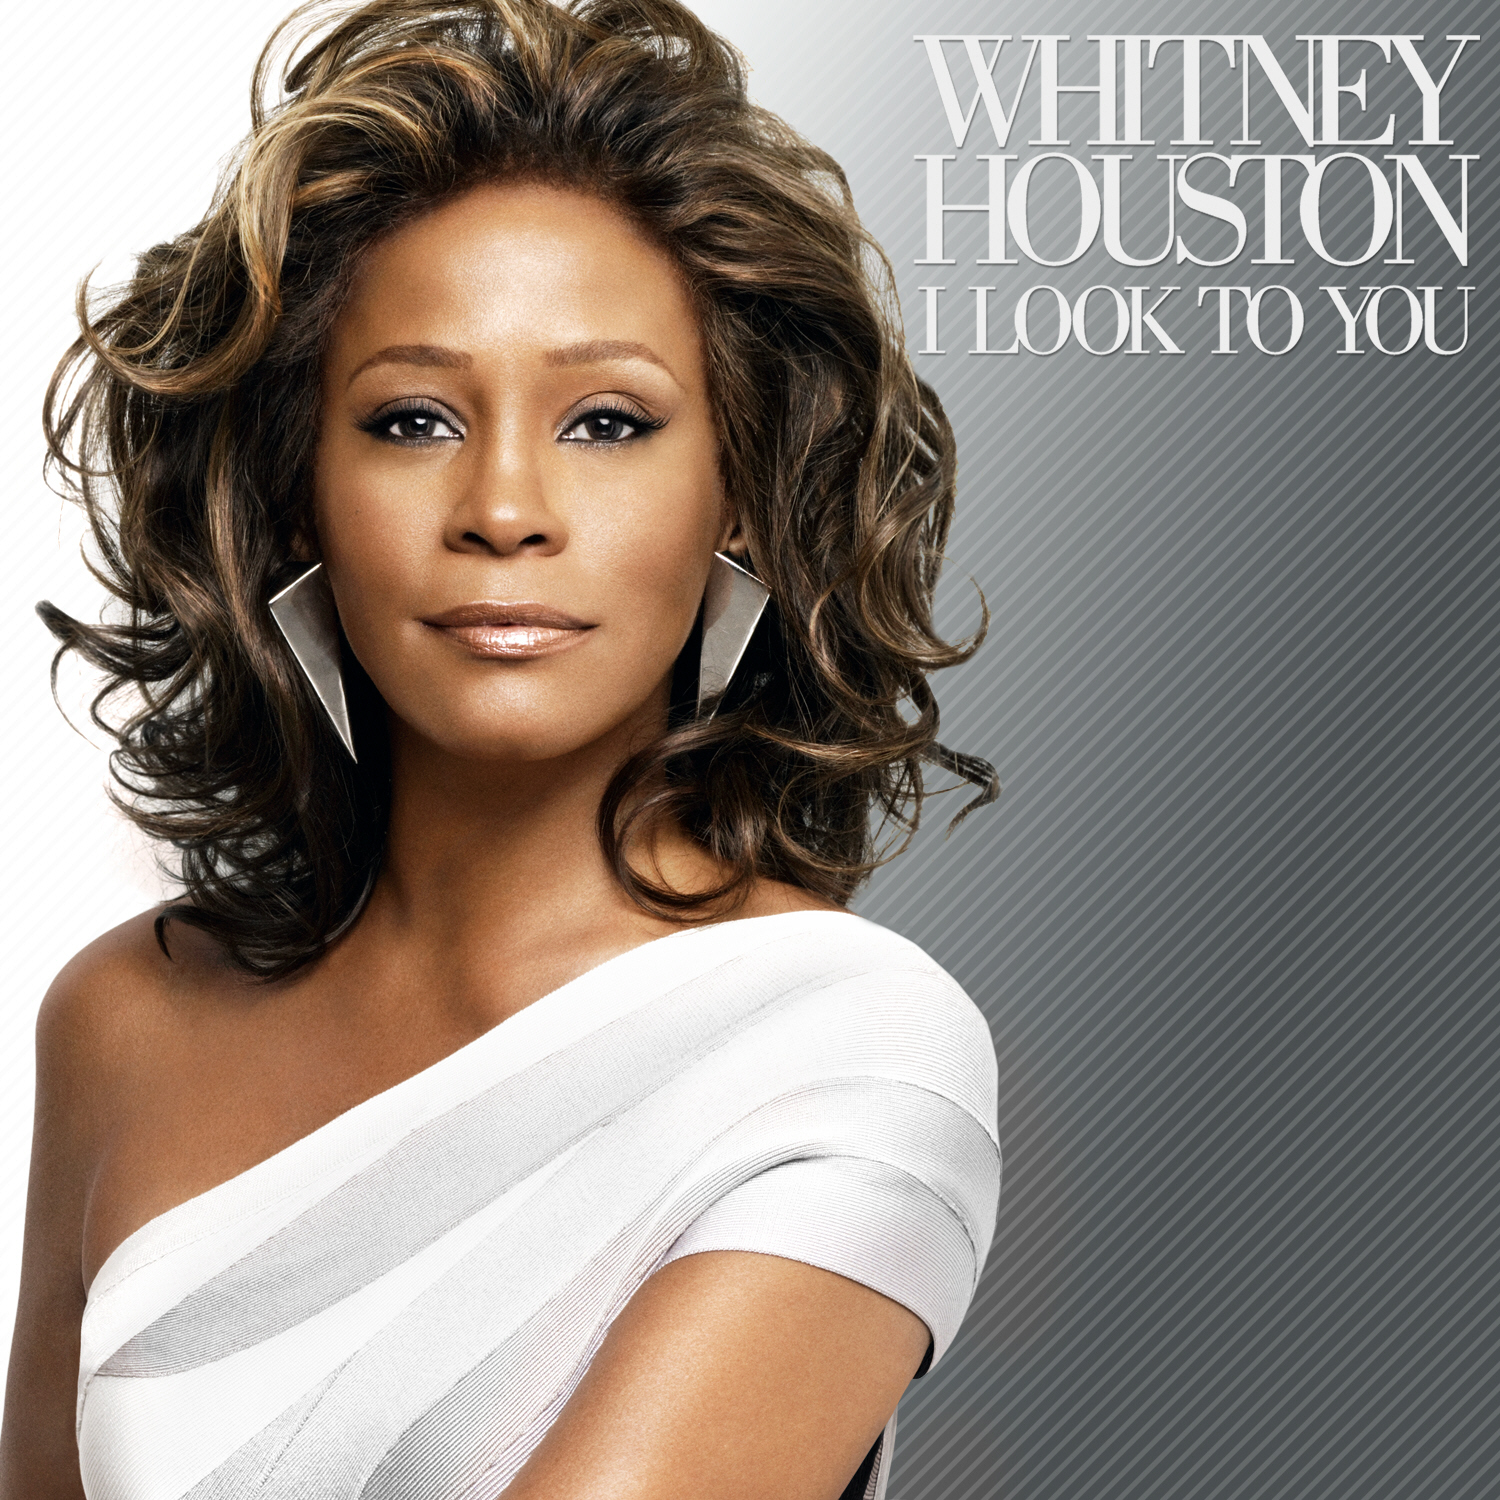 http://2.bp.blogspot.com/-9ZaS_EhIiSI/Tzpsb8L9mjI/AAAAAAAABc4/AWGo8qTtr-s/s1600/Whitney-Houston-%E2%80%93-I-Look-To-You.jpg